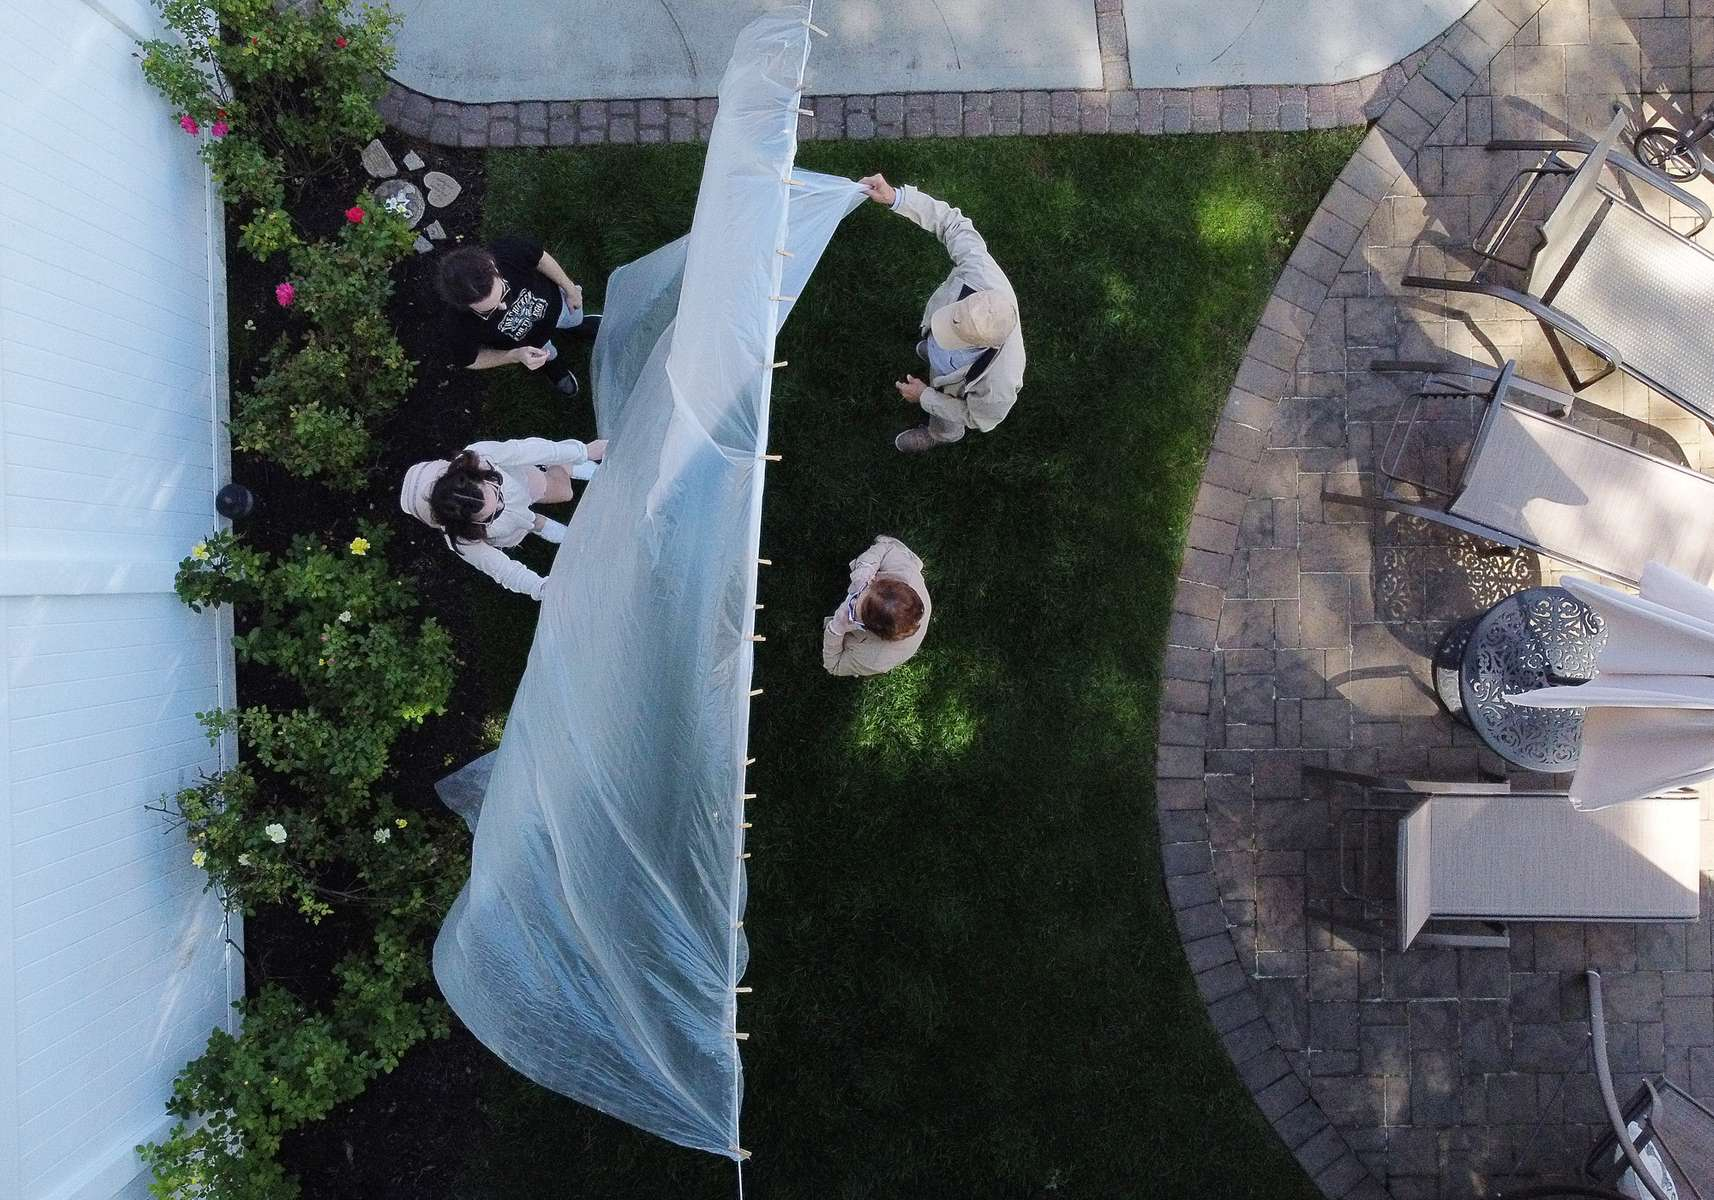 An aerial view of Olivia and James Grant hug their Grandparents Mary Grace and Domenik Sileo through a plastic drop cloth hung up on a homemade clothes line during Memorial Day Weekend on May 24, 2020 in Wantagh, New York.  It is the first time they have had physical contact of any kind since the coronavirus COVID-19 pandemic lockdown started in late February.